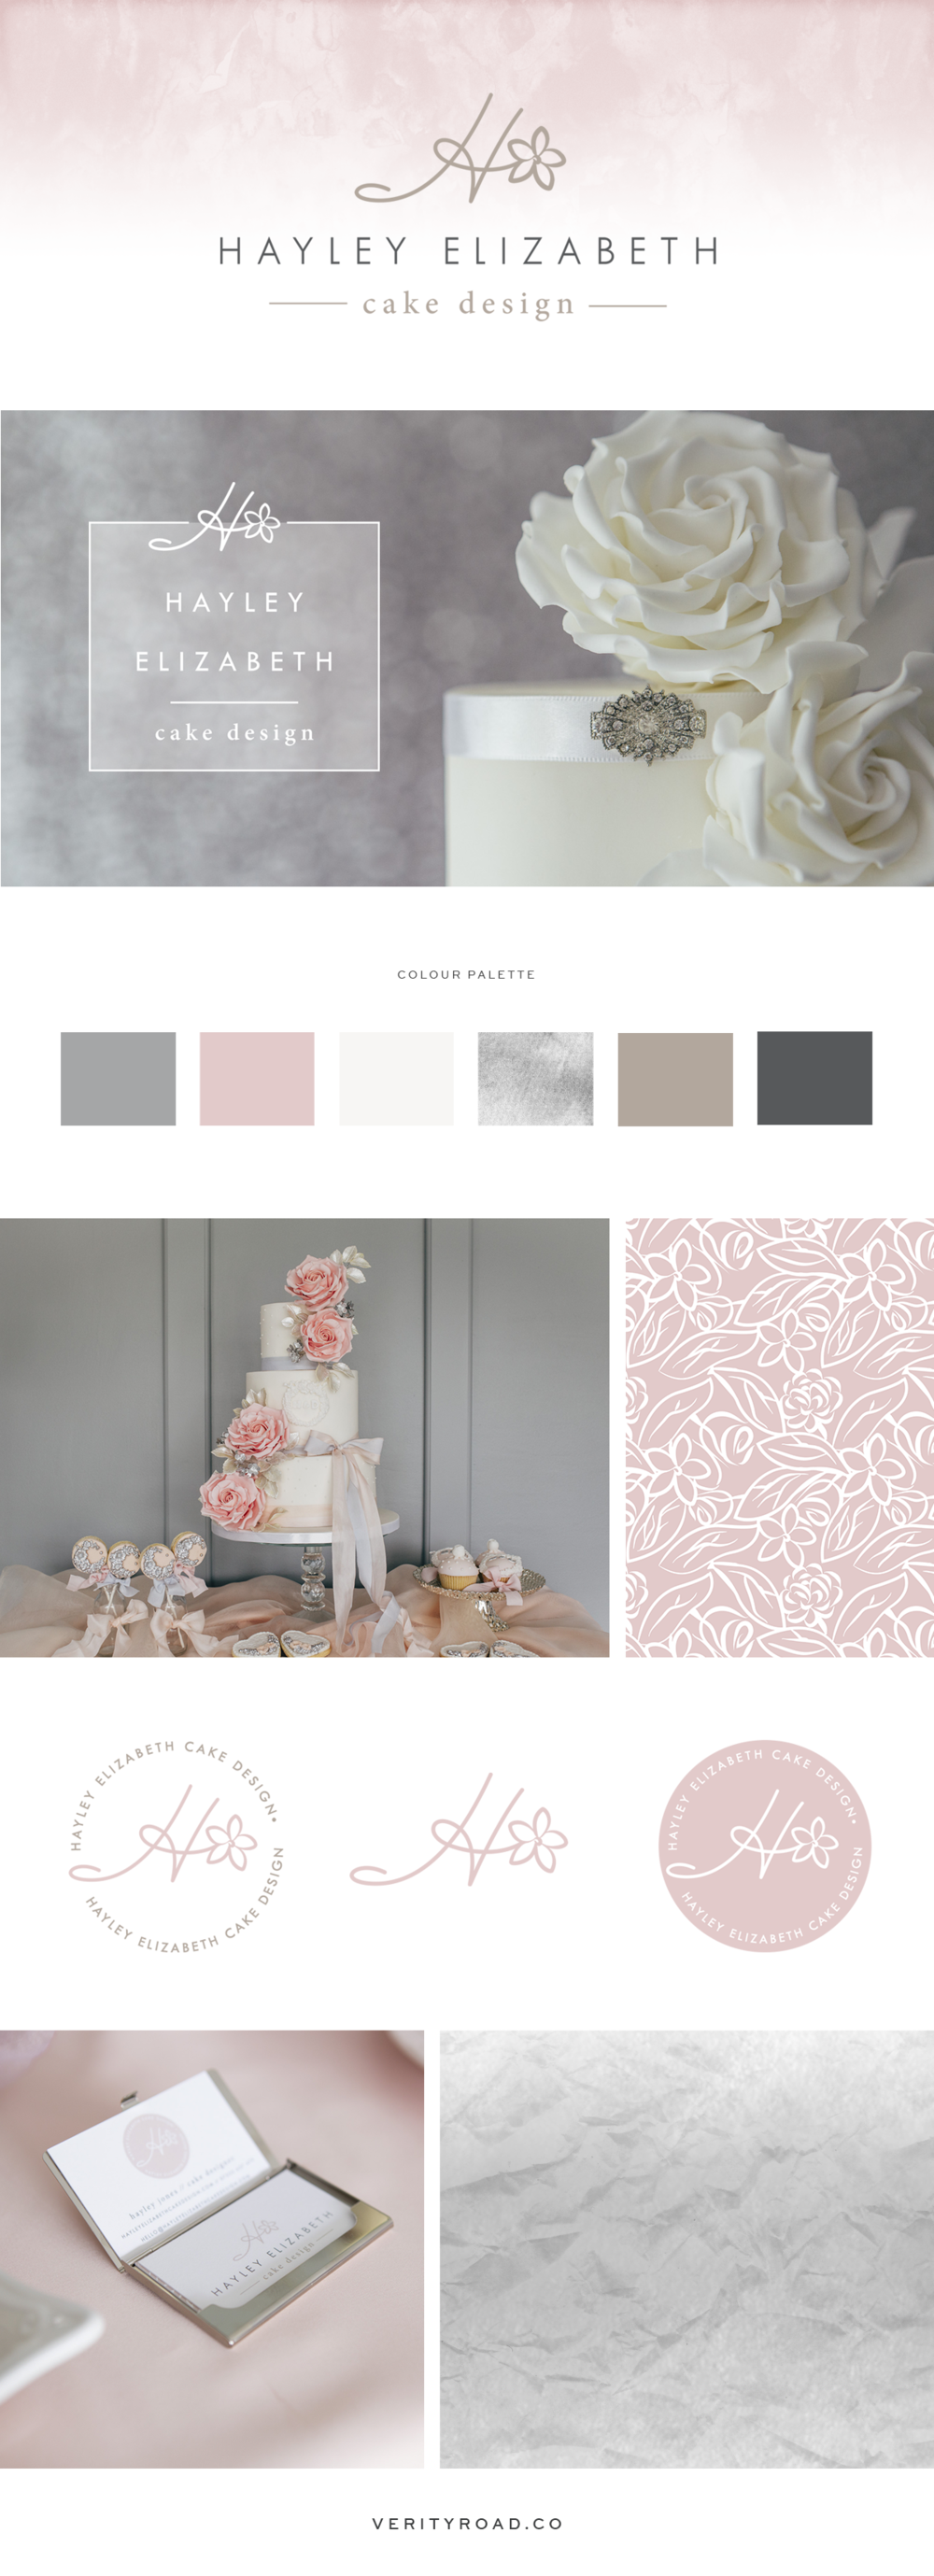 Brand board, brand style guide for the branding of Hayley Elizabeth Cake Design by Verity Road.Feminine branding, feminine web design, luxury branding, female entrepreneur, wedding professional, wedding business branding. Logo design, brand elements, feminine colour palette, business card design, patterns and textures. See more for custom web design.